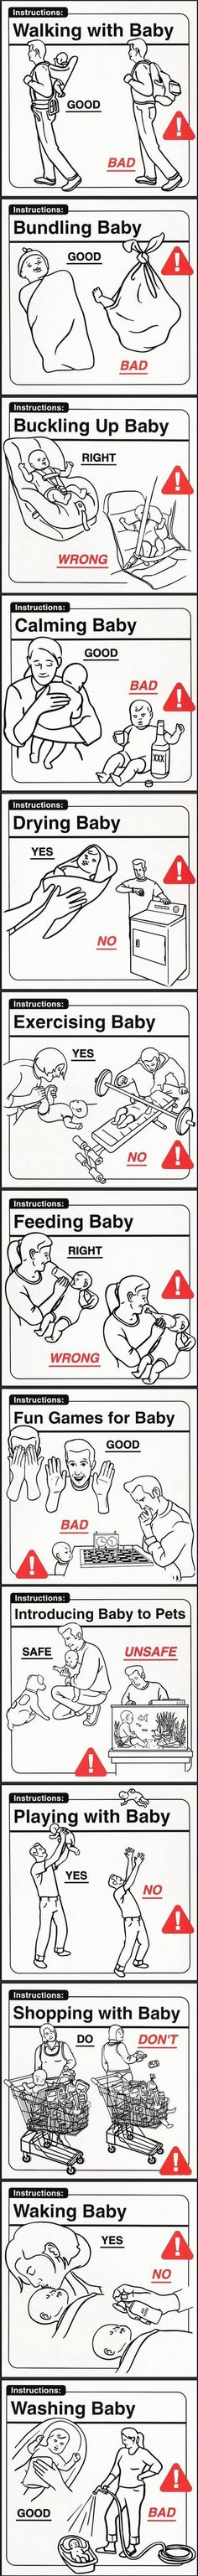 Good advice for new parents